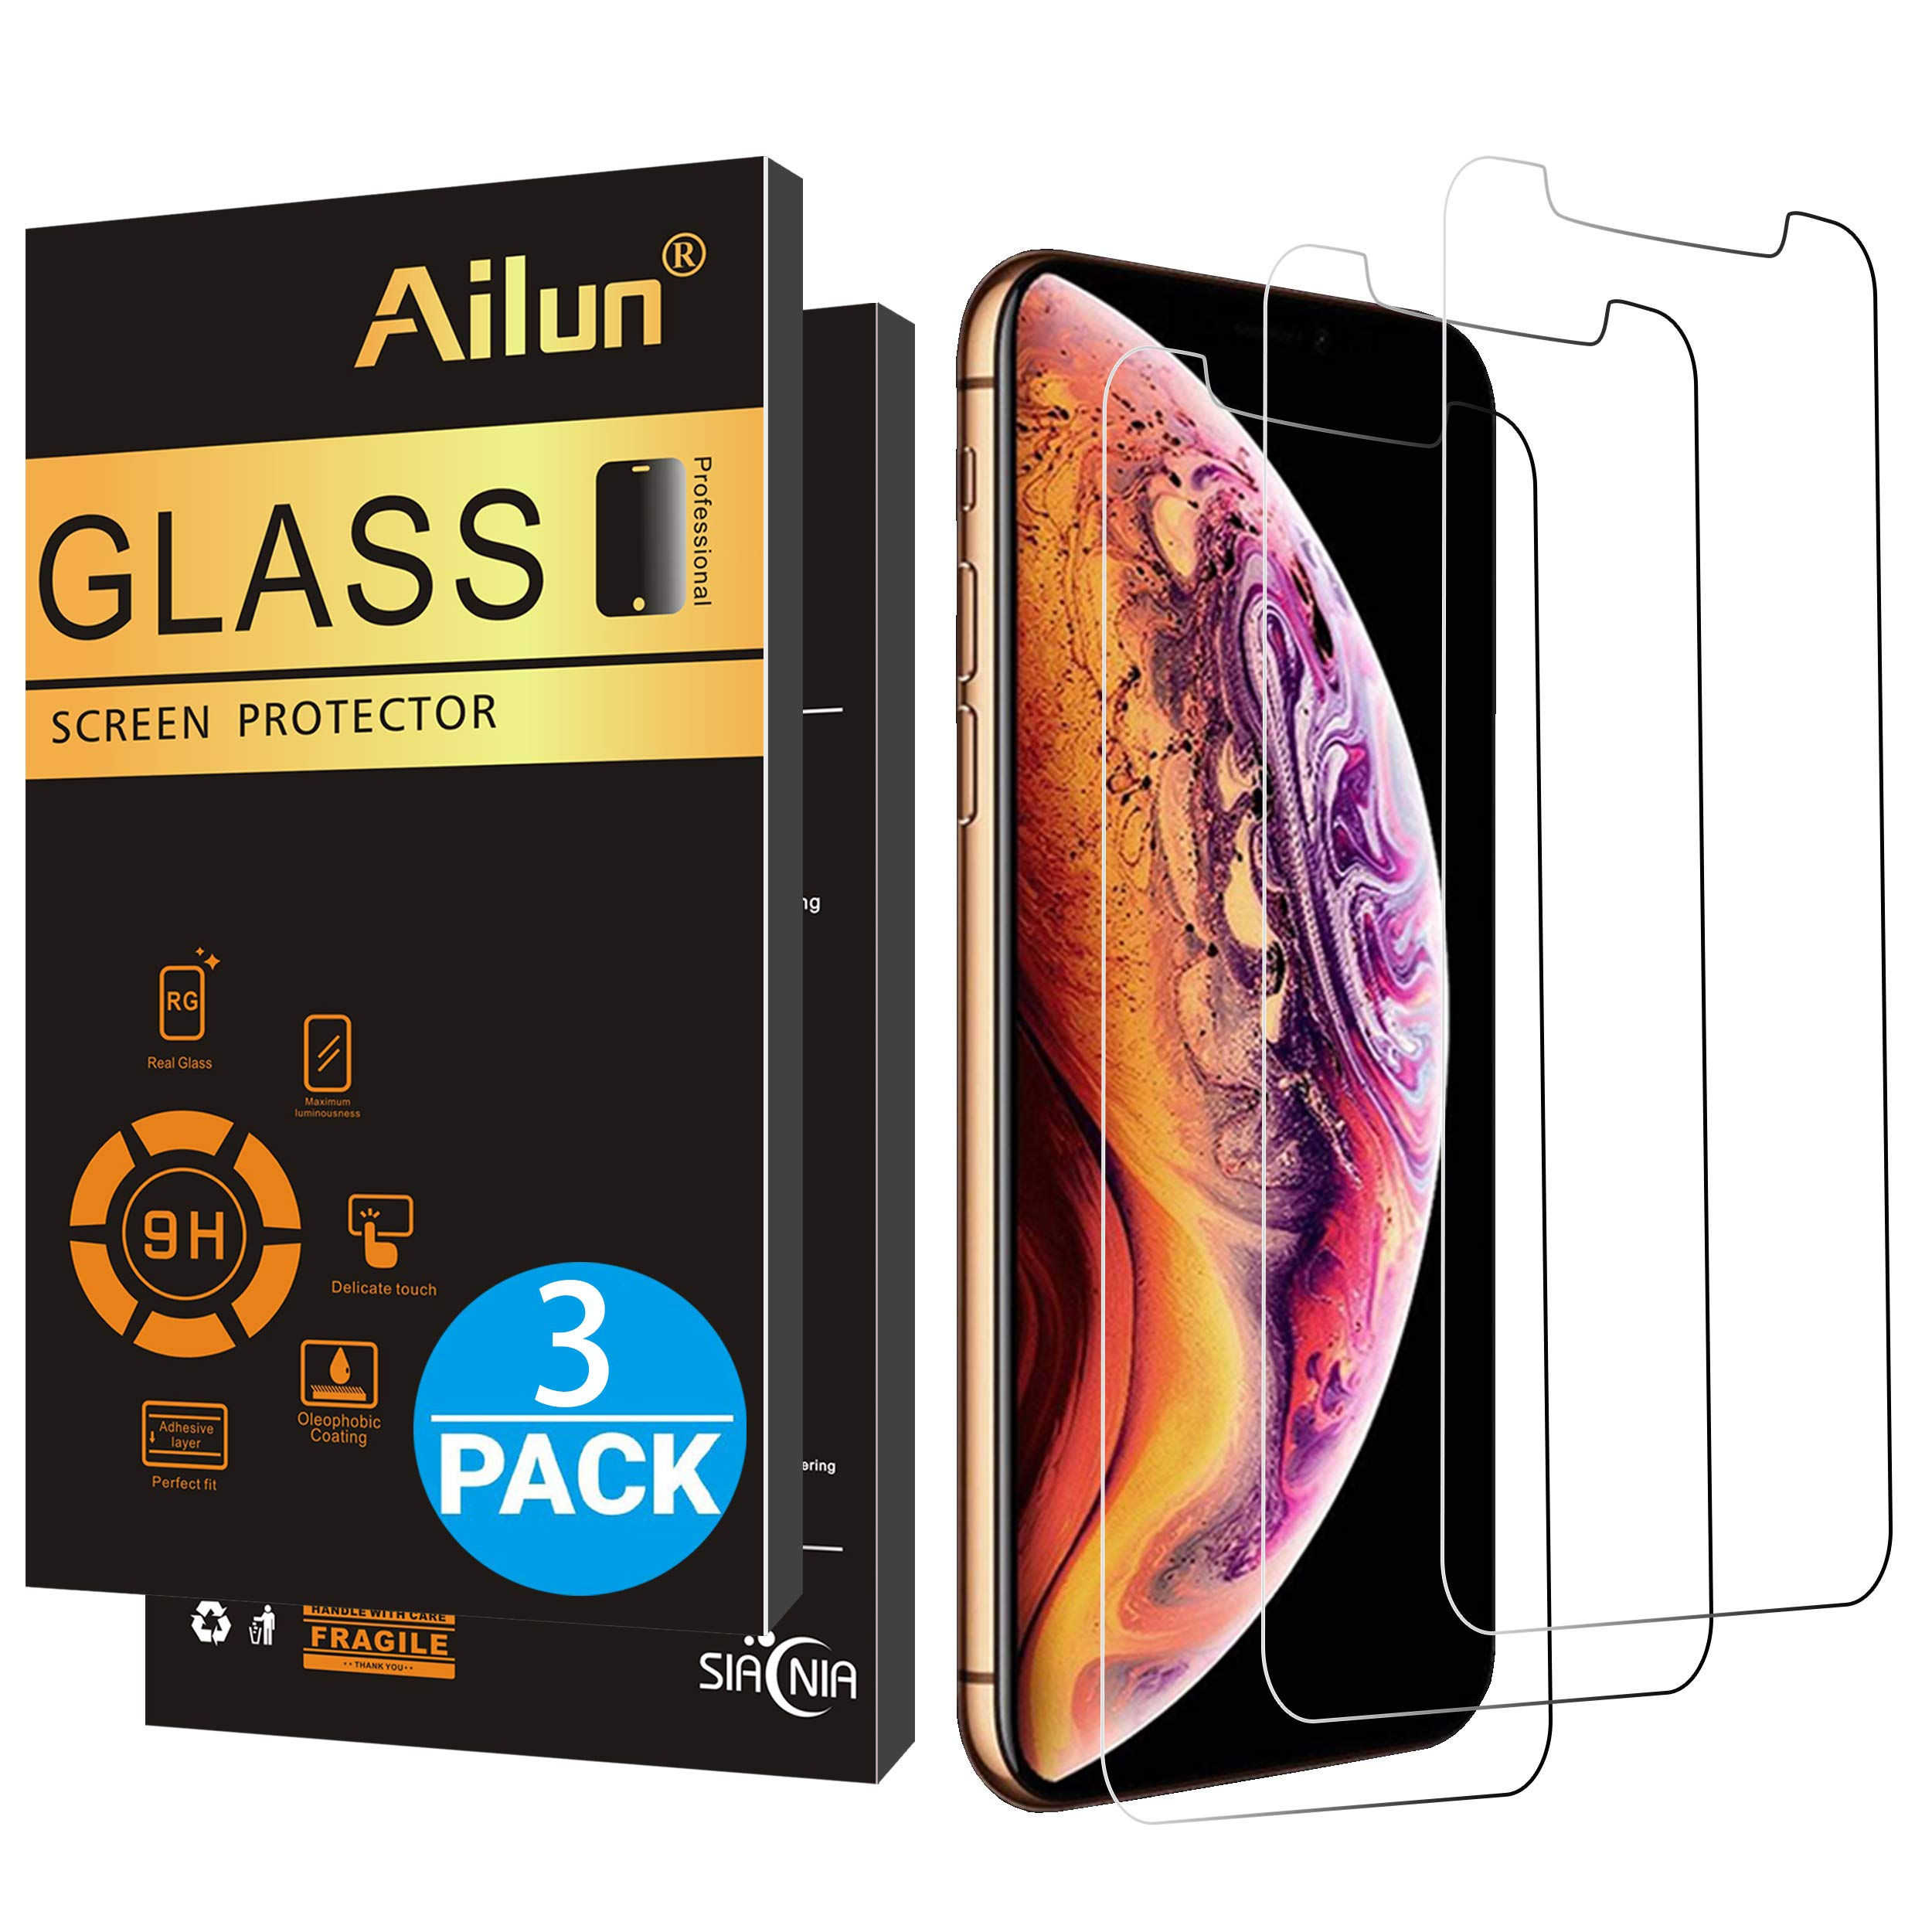 AILUN Compatible with Apple iPhone Xs Max Screen Protector[3 Pack](6.5 inch 2018 Release) Tempered Glass 0.33mm Anti-Scratch,Advanced HD Clarity Work with Most Case